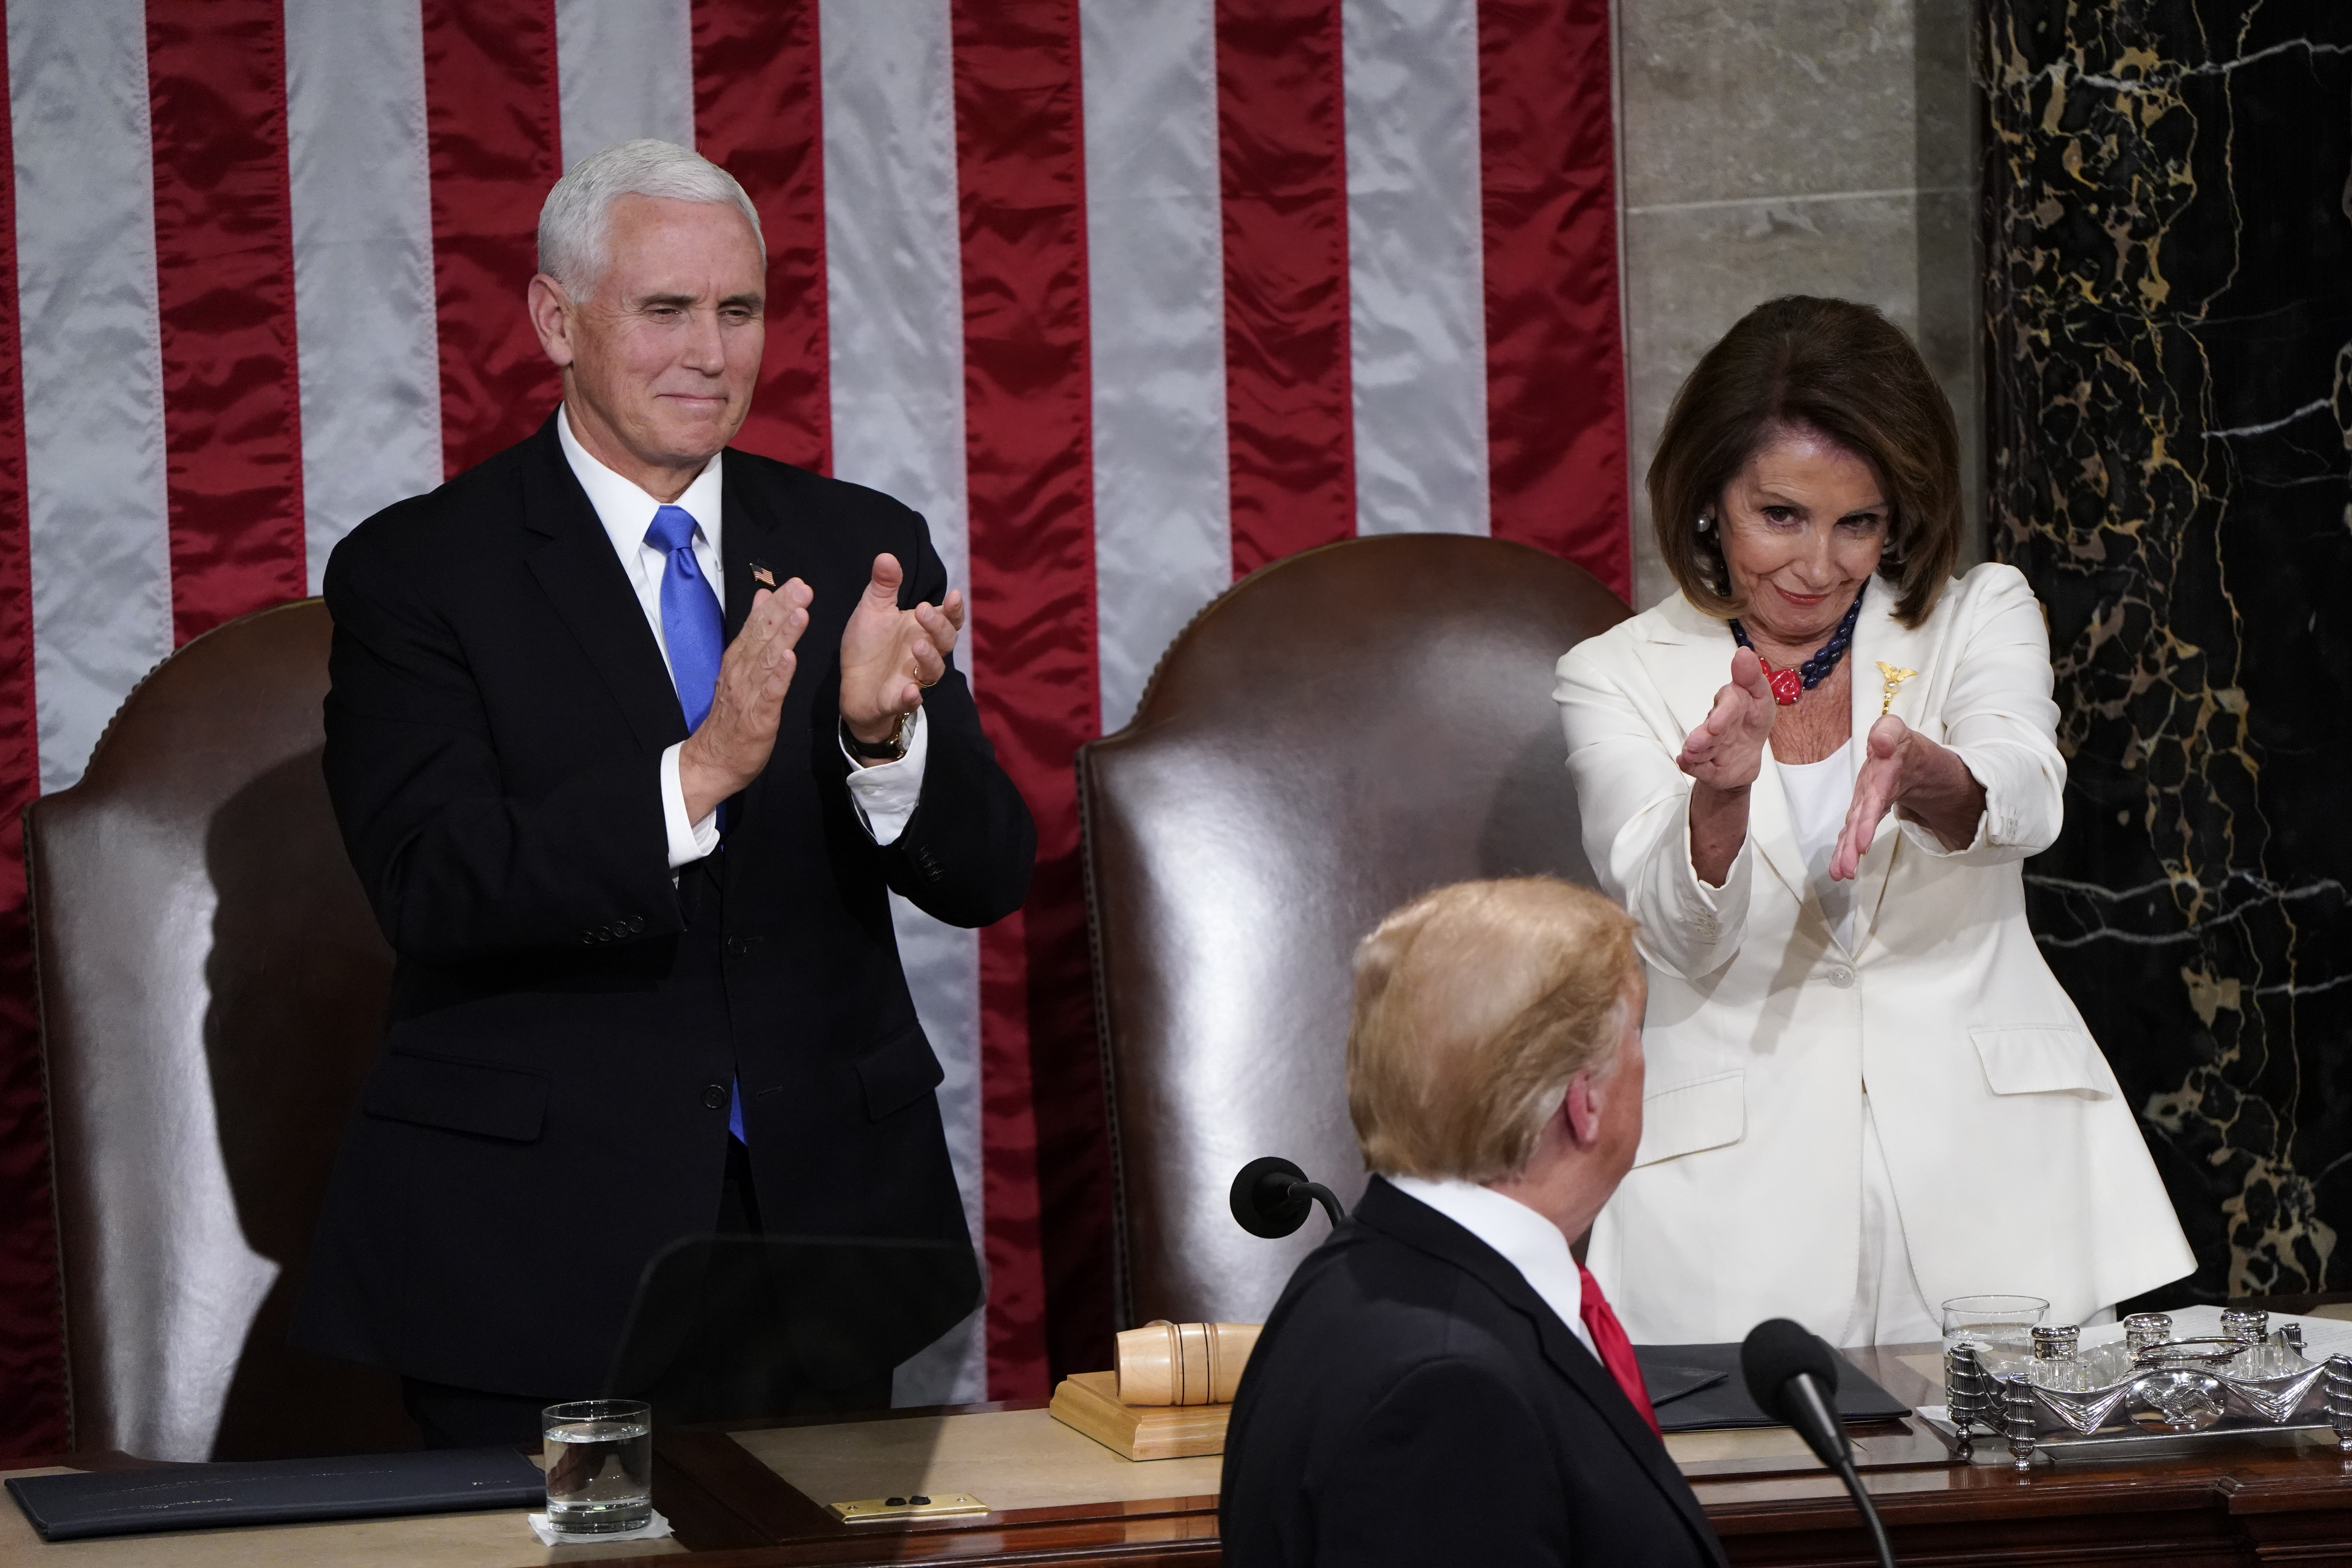 Nancy Pelosi was one of many, many Congresswomen in white jackets and suits.